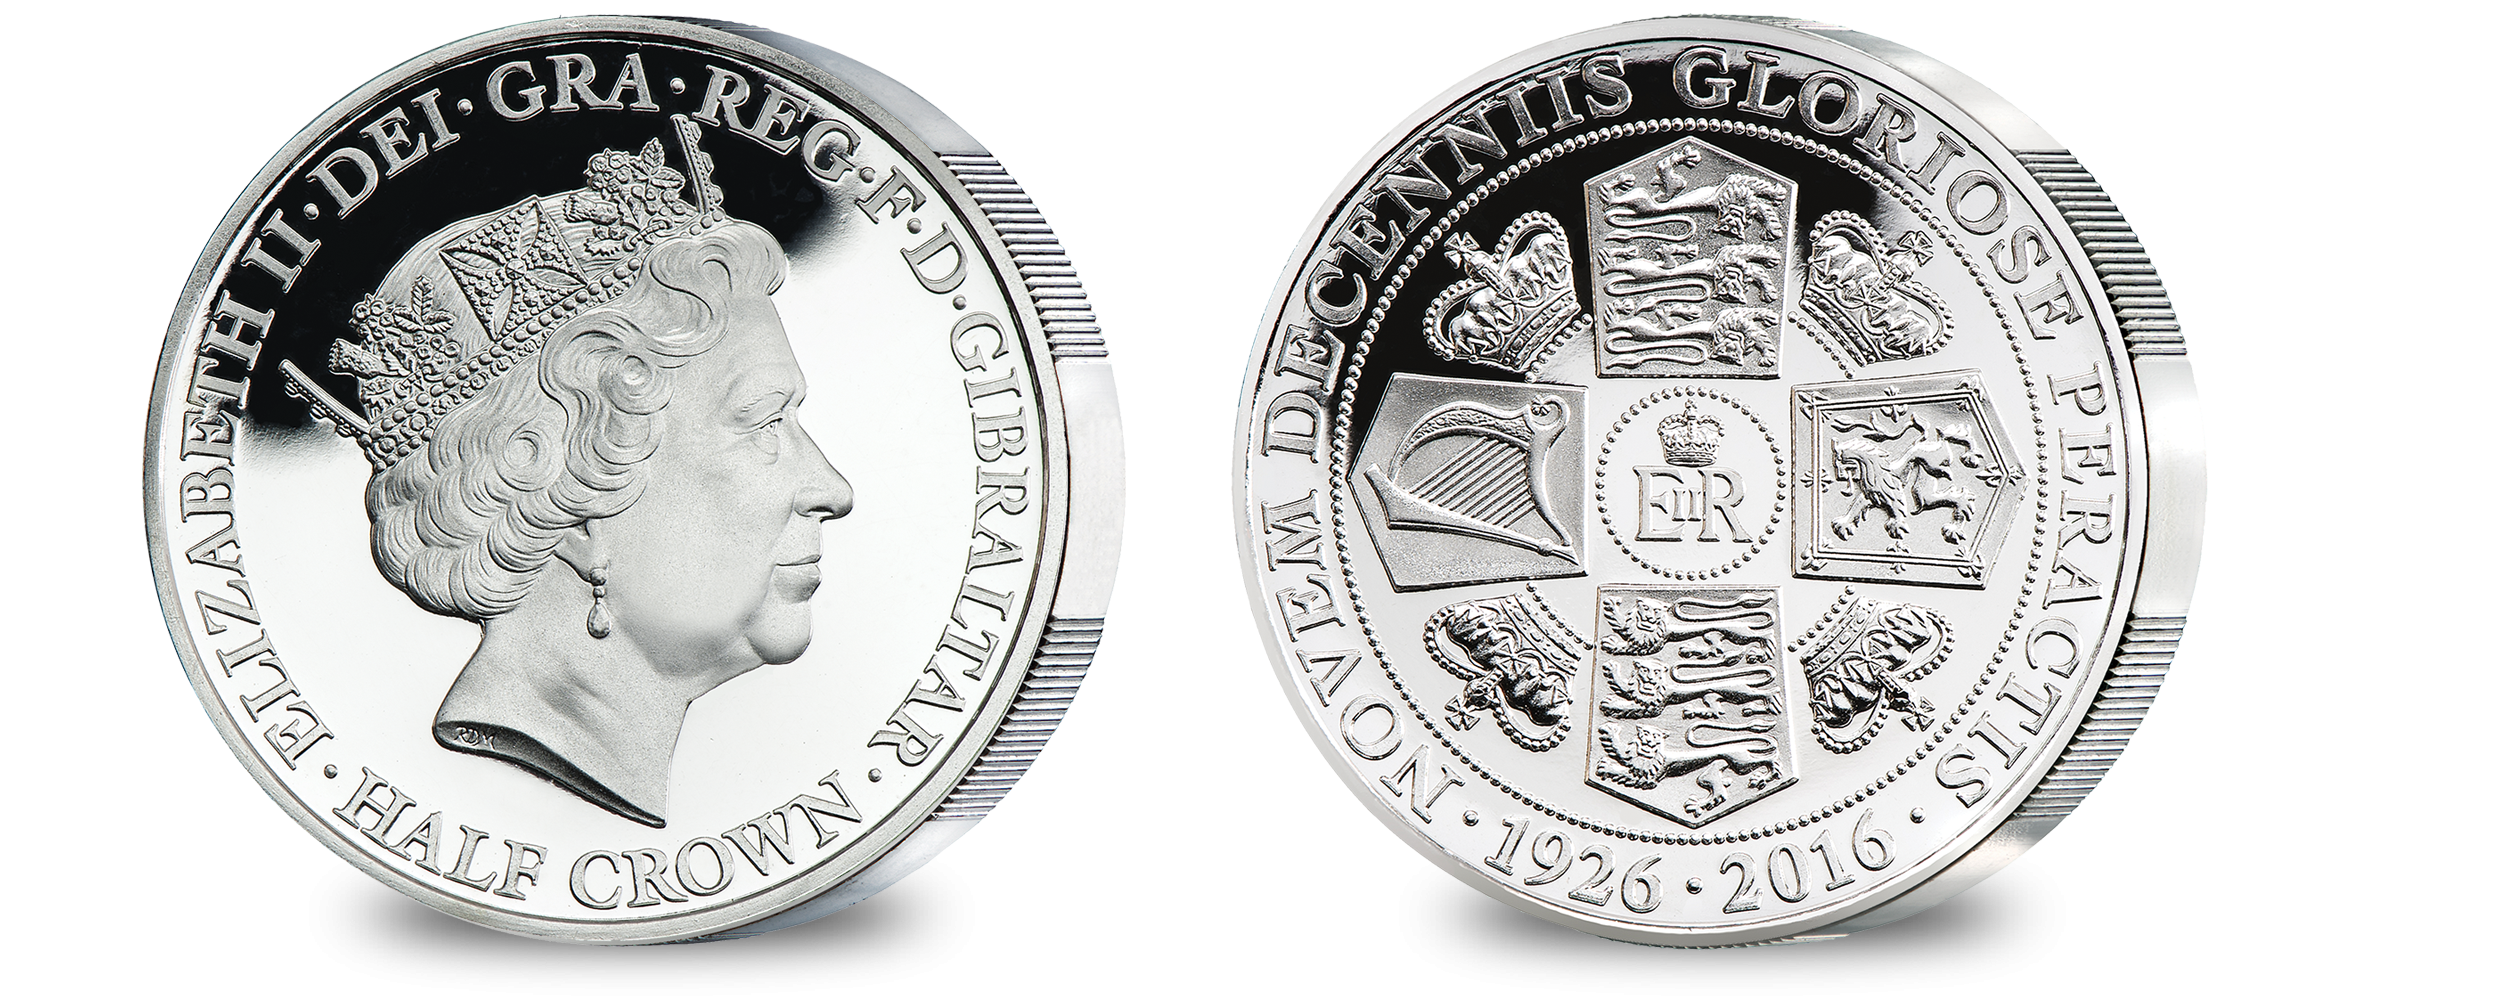 Coin clipart ancient coin. Her majesty s th